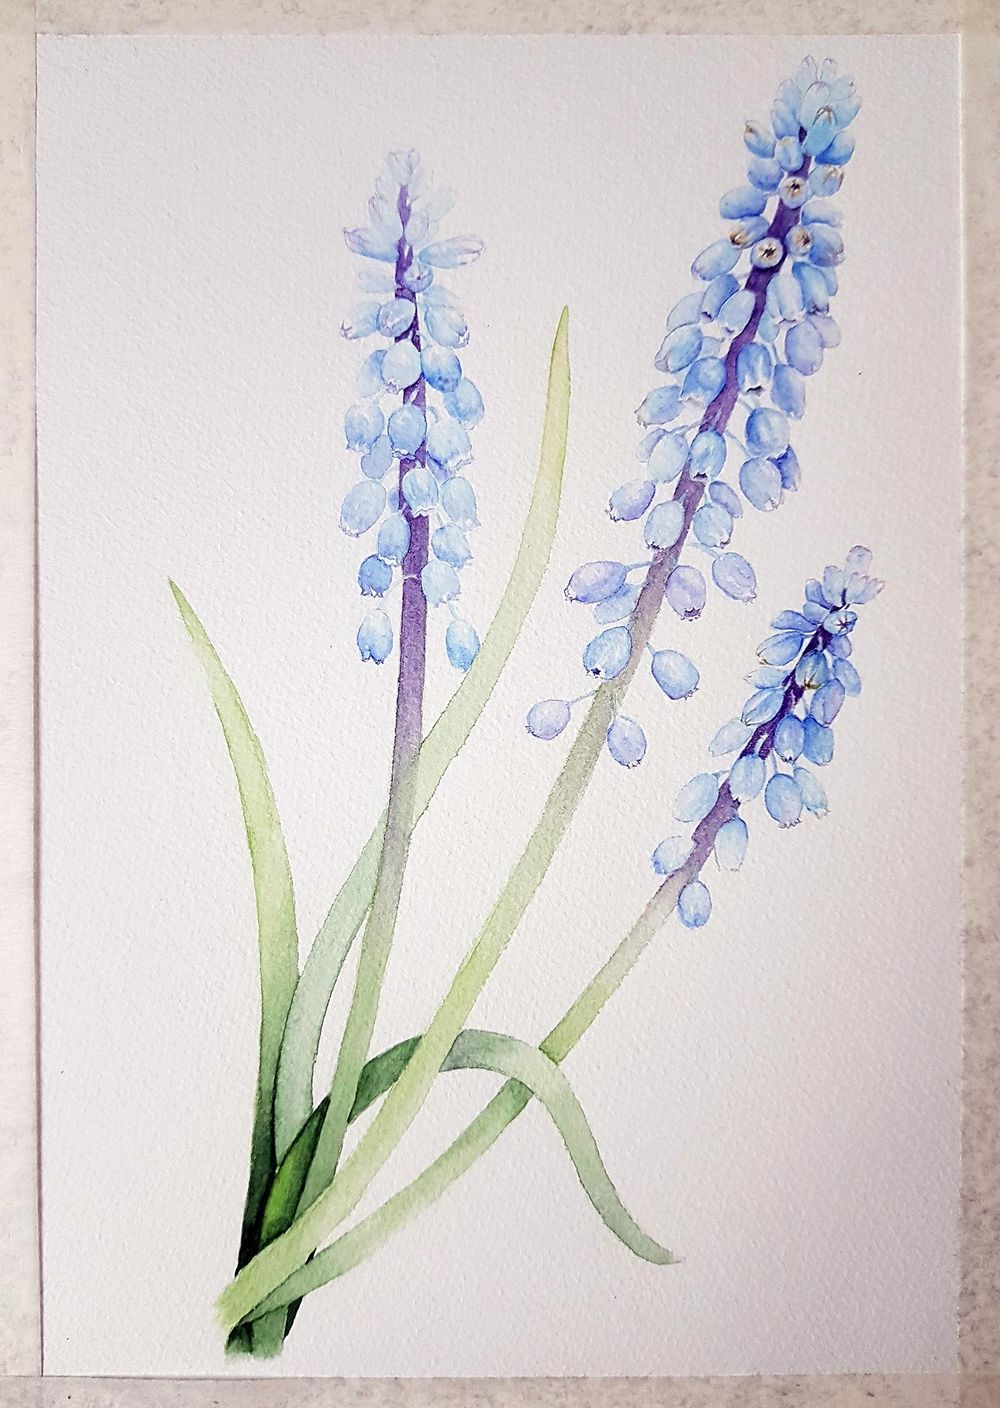 Vintage-Inspired grape-hyacinth - image 3 - student project